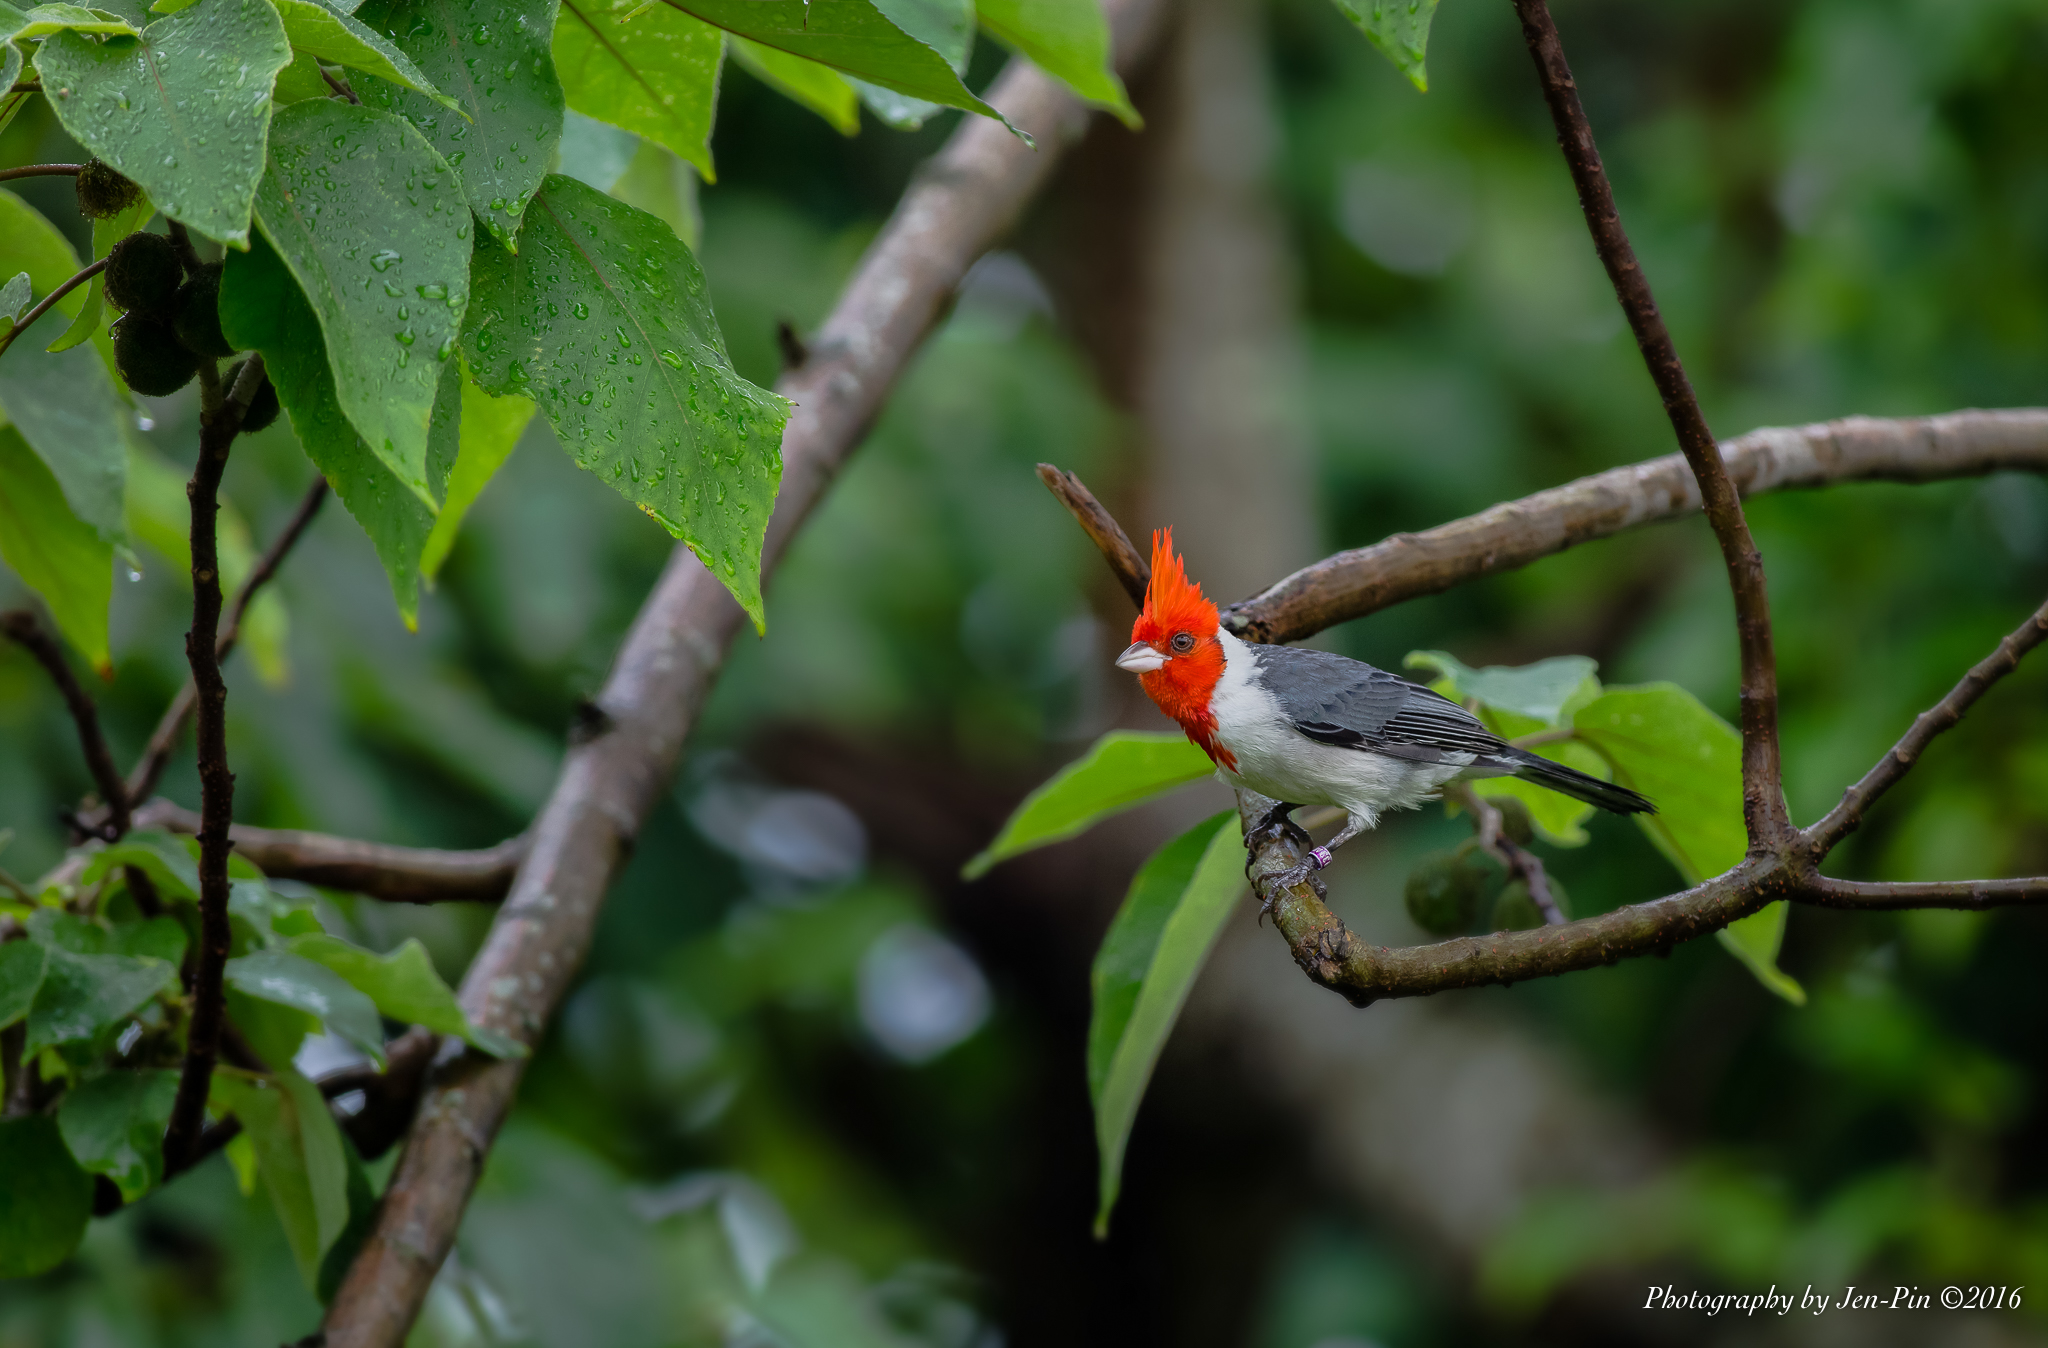 冠紅臘嘴雀(Red-crested Cardinal)©Photography Jen-Pin LIN 林仁斌